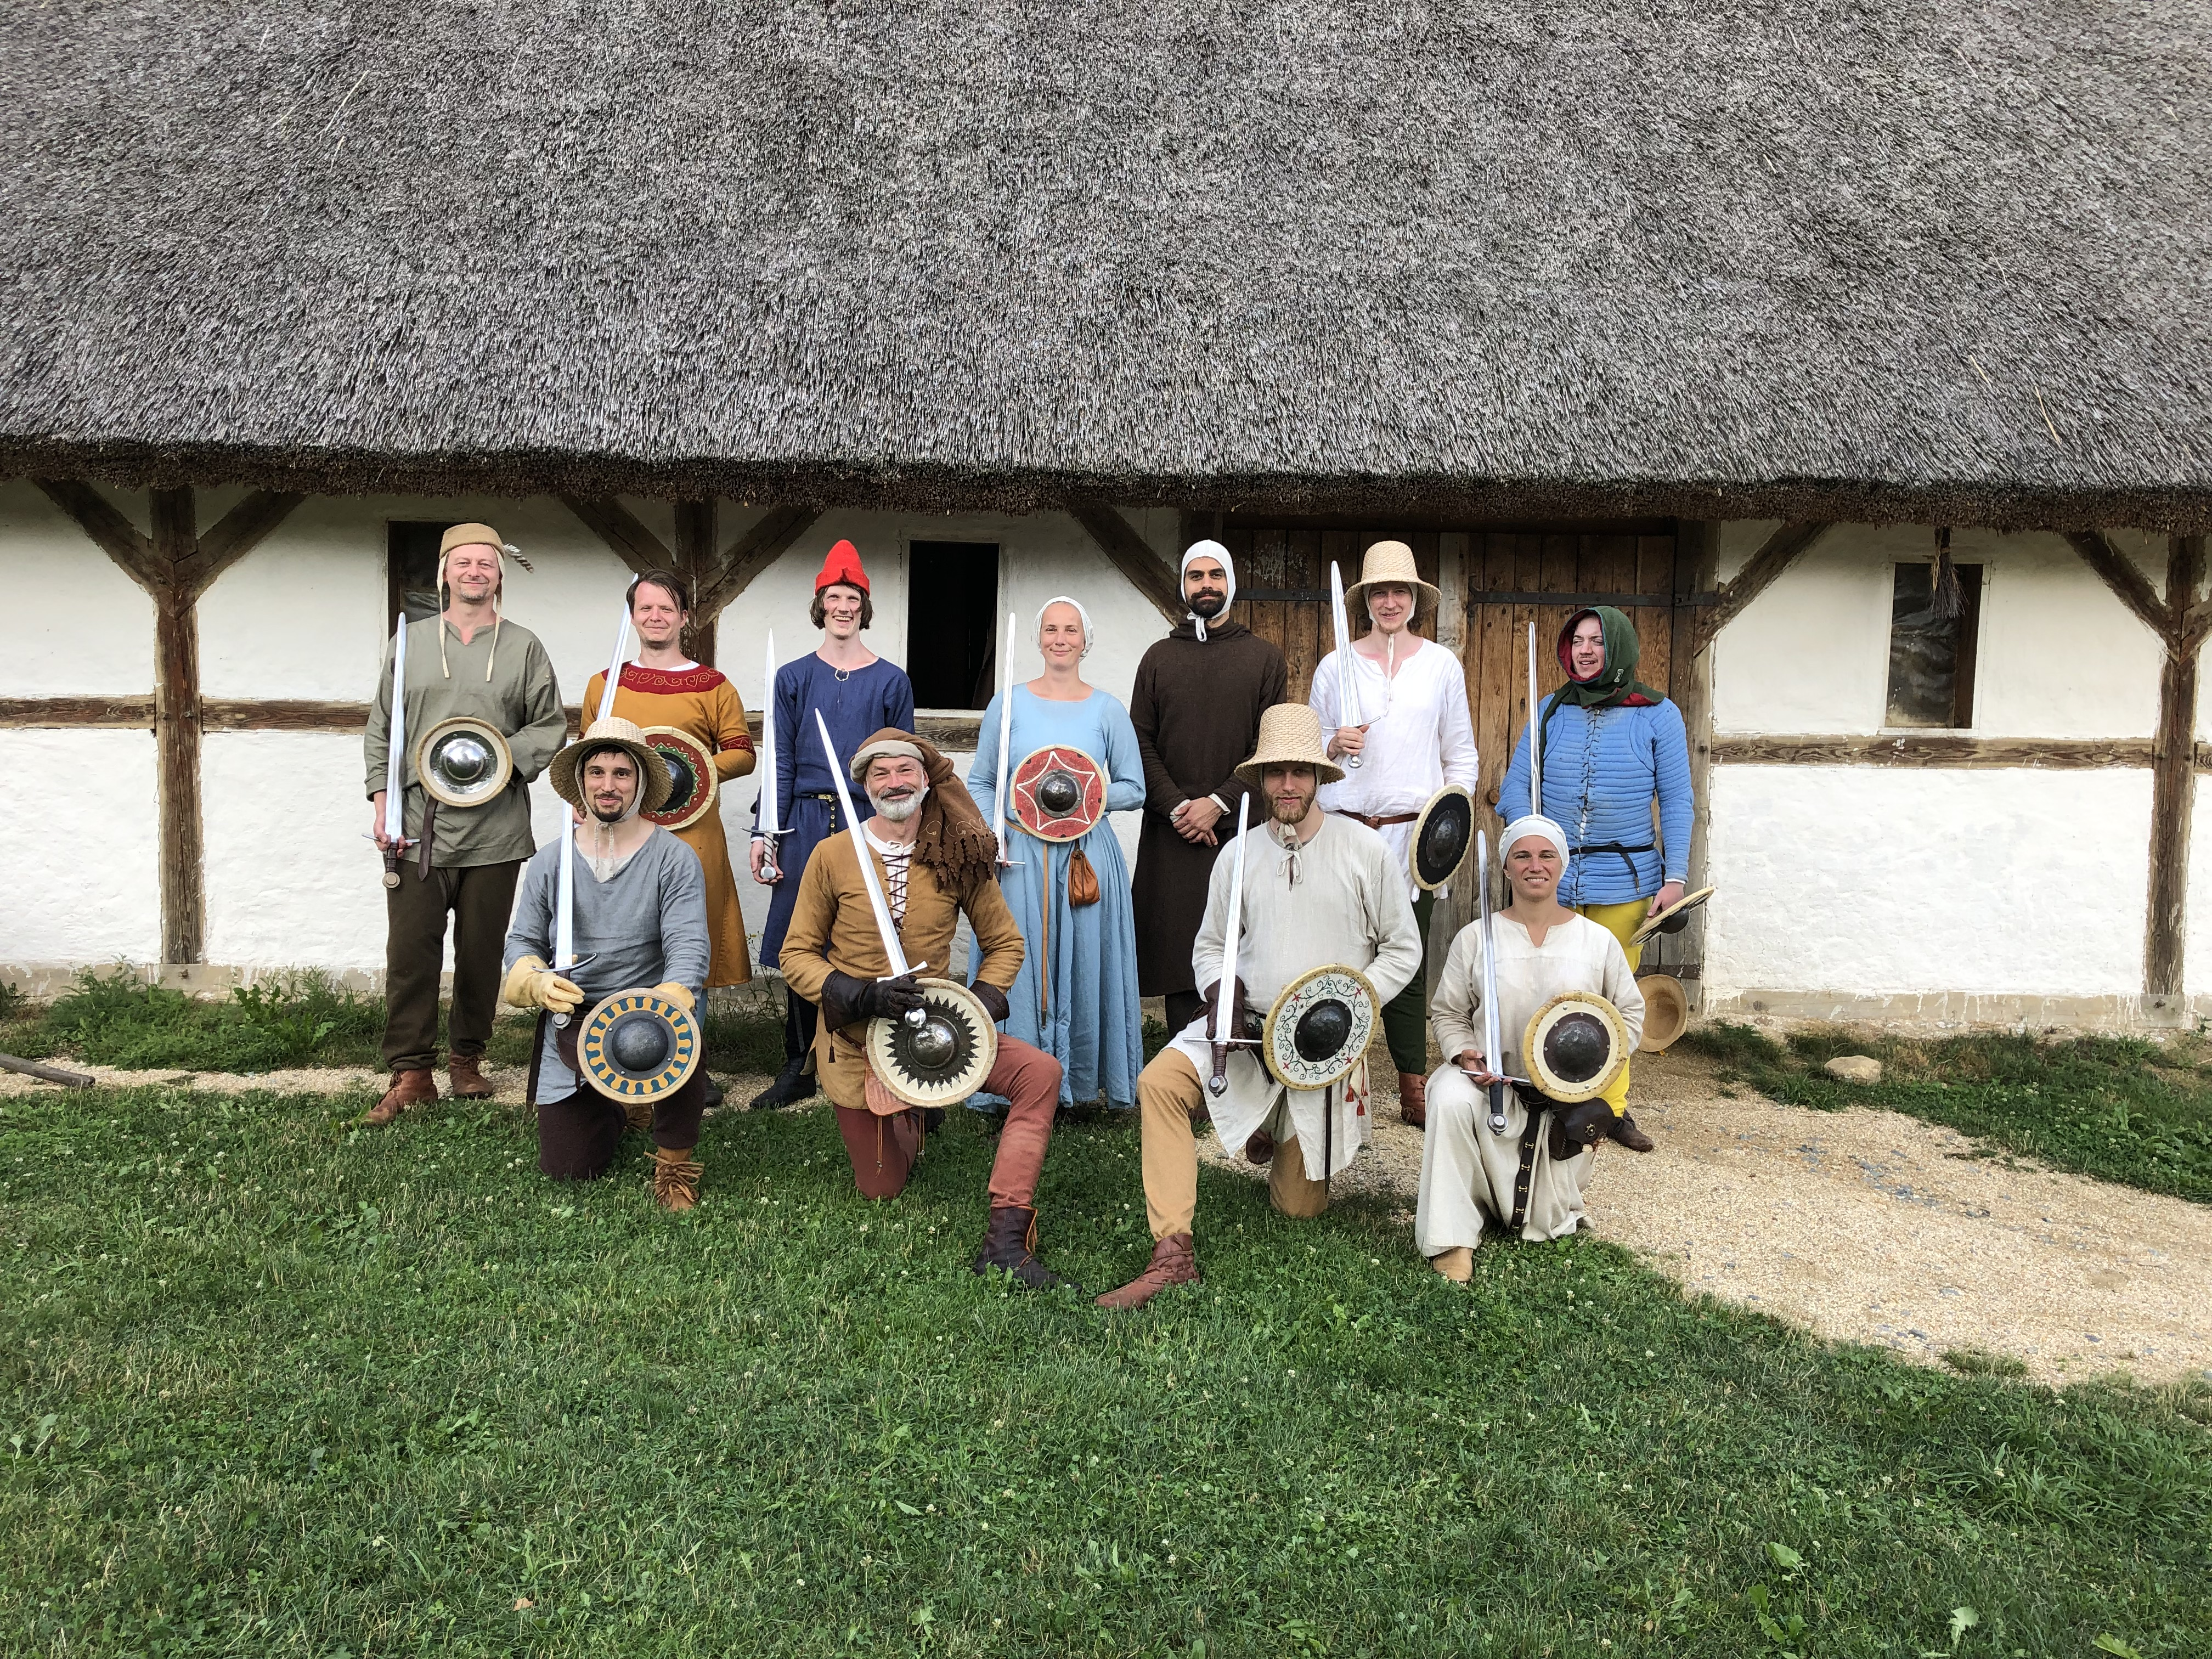 Eleven people in late medieval clothing standing in front of a wattle-and-daub building